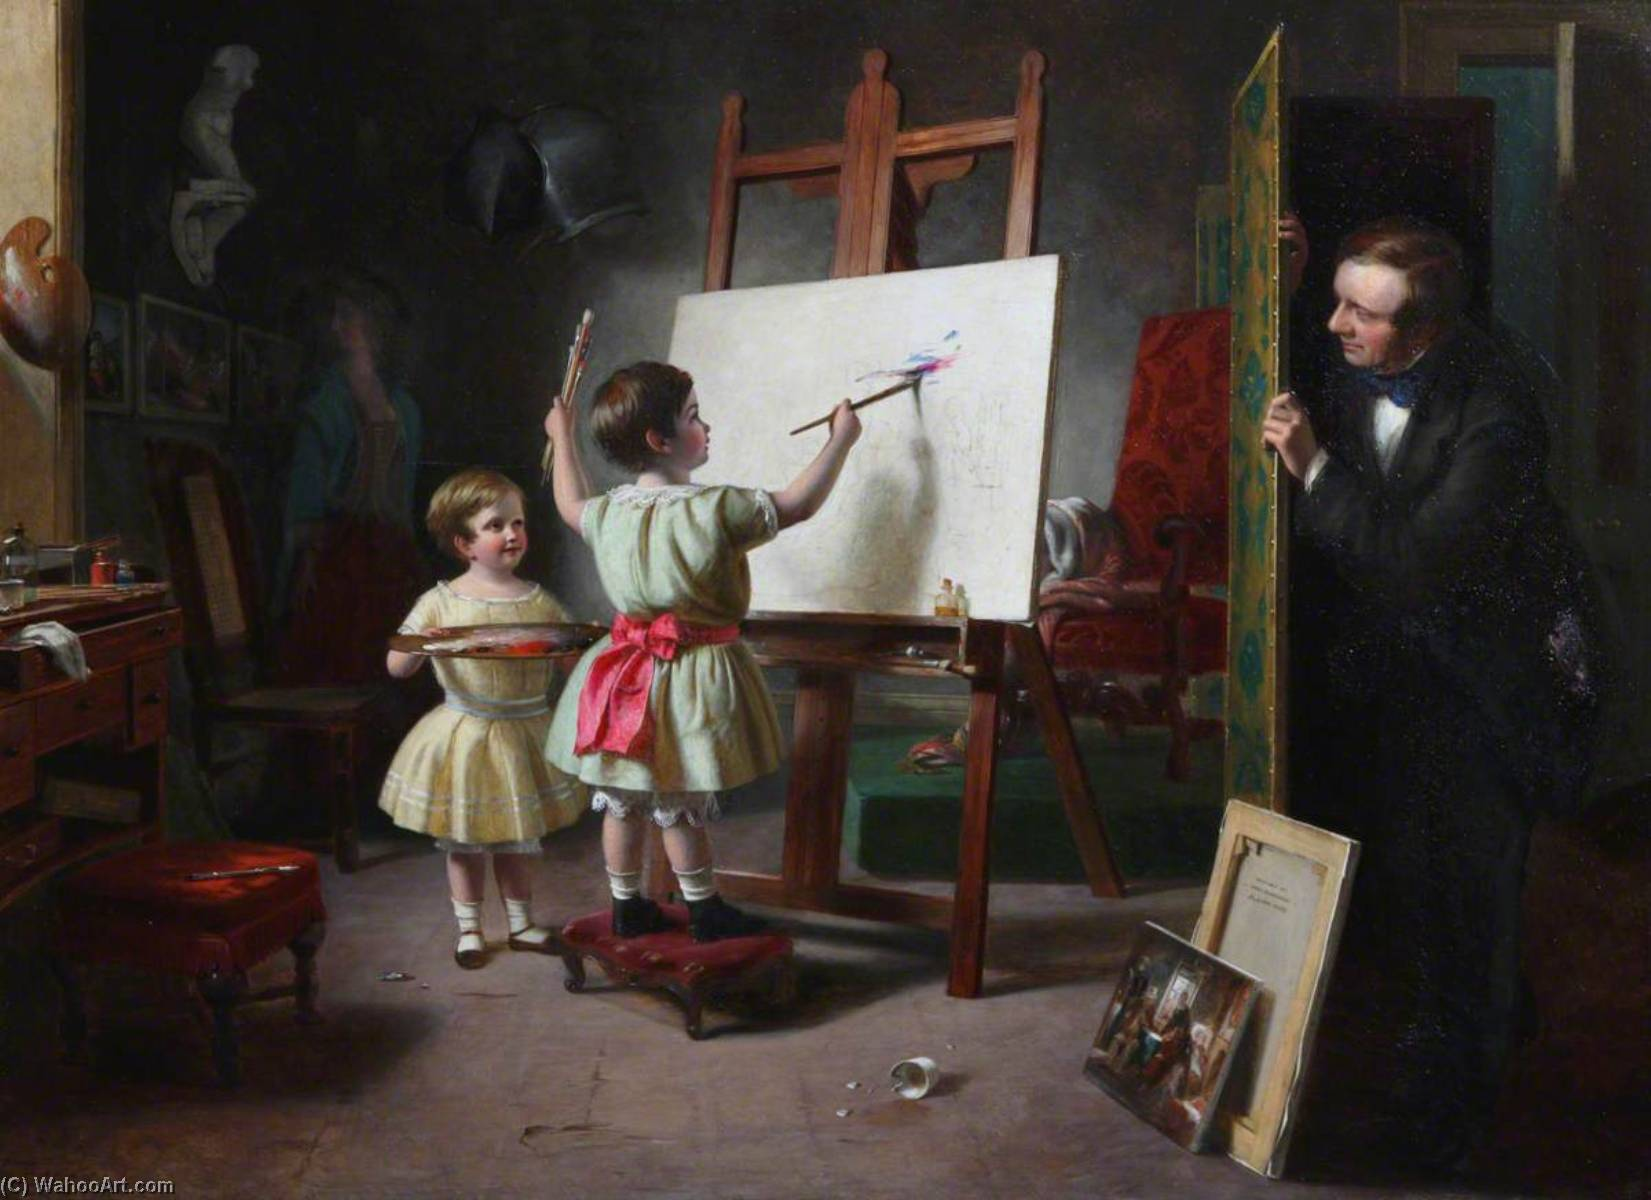 Dispetto dopodomani  Studio di artista , 1855 di Thomas Brooks | WahooArt.com